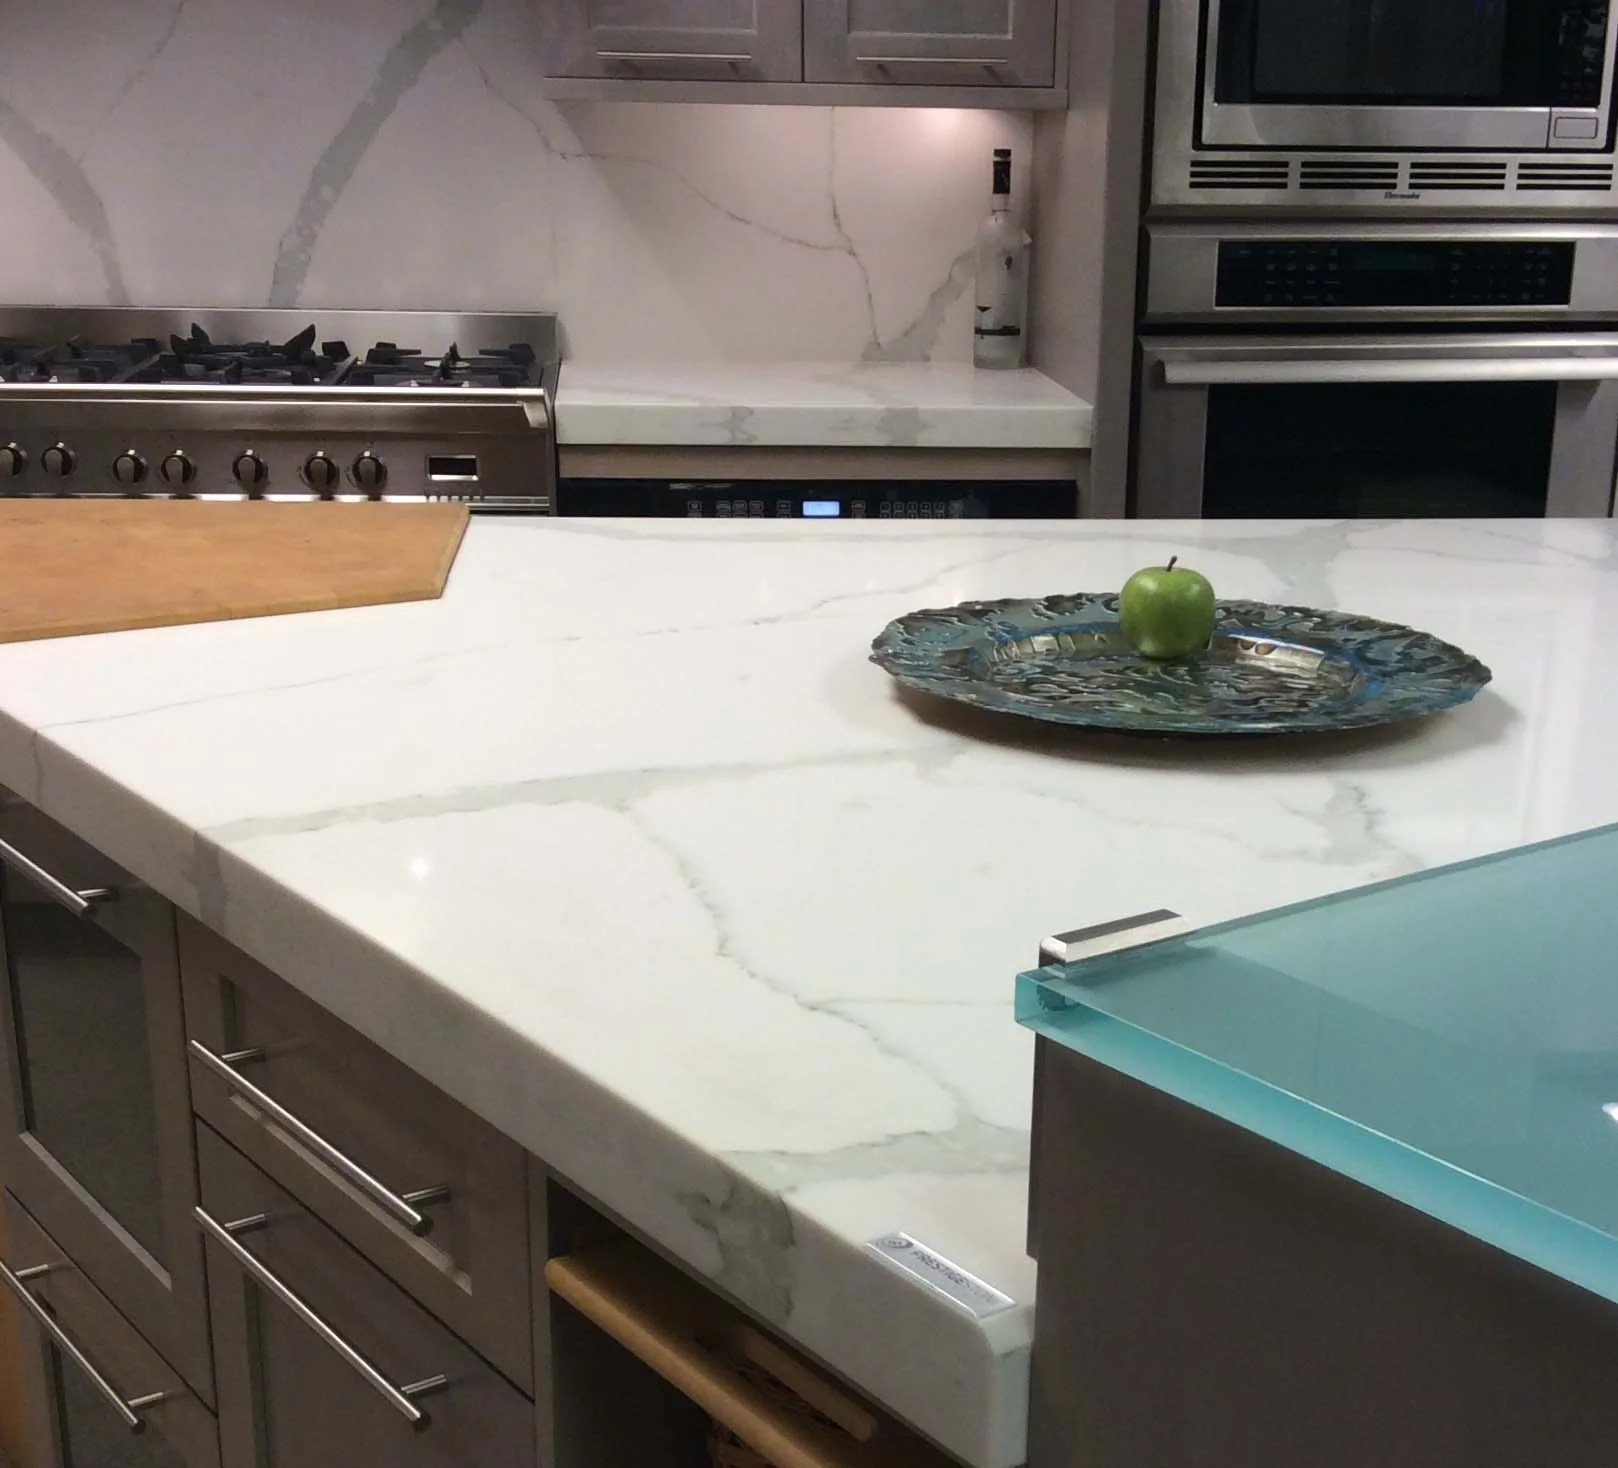 New Prestige Stone Quartz Gallery Prestige By Bpi New Prestige Stone Quartz Gallery – Prestige By Bpi